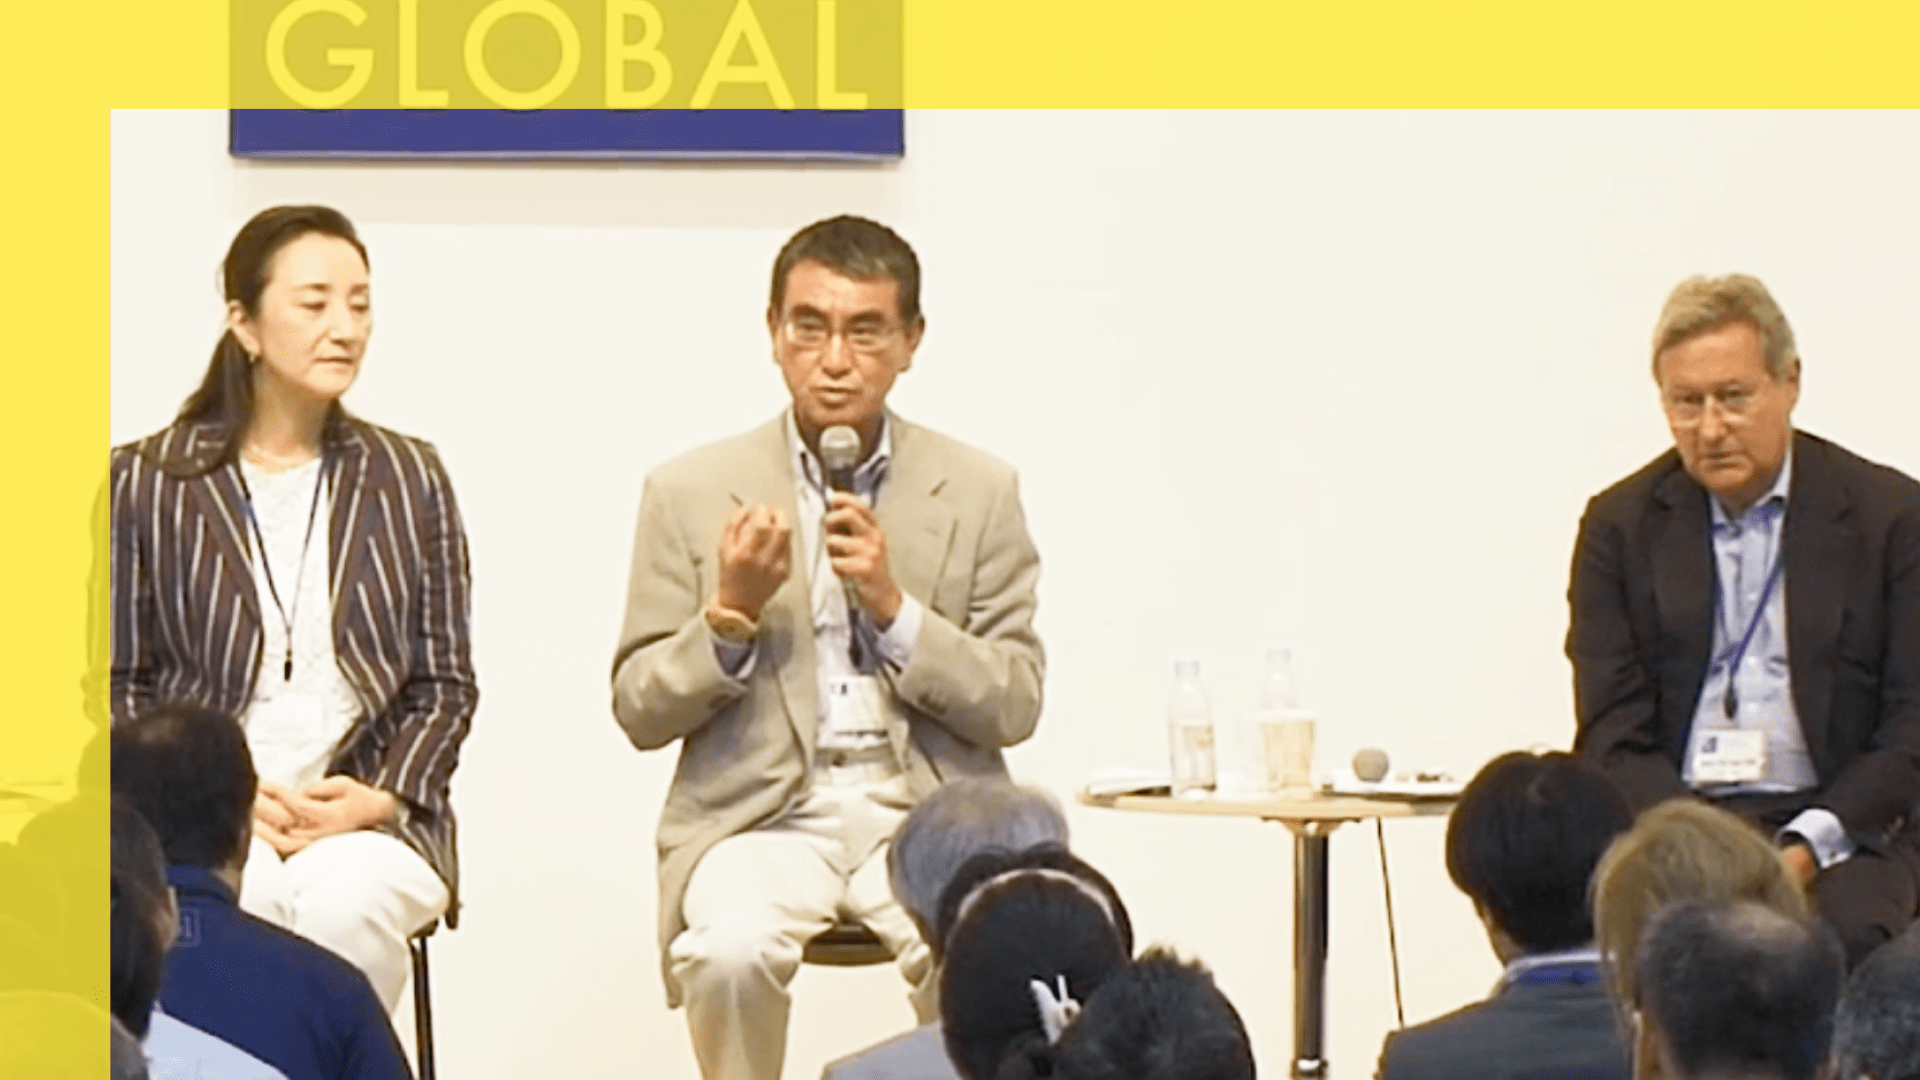 Sustainable Innovation in Times of Disruption: Japan's Geopolitical Leadership